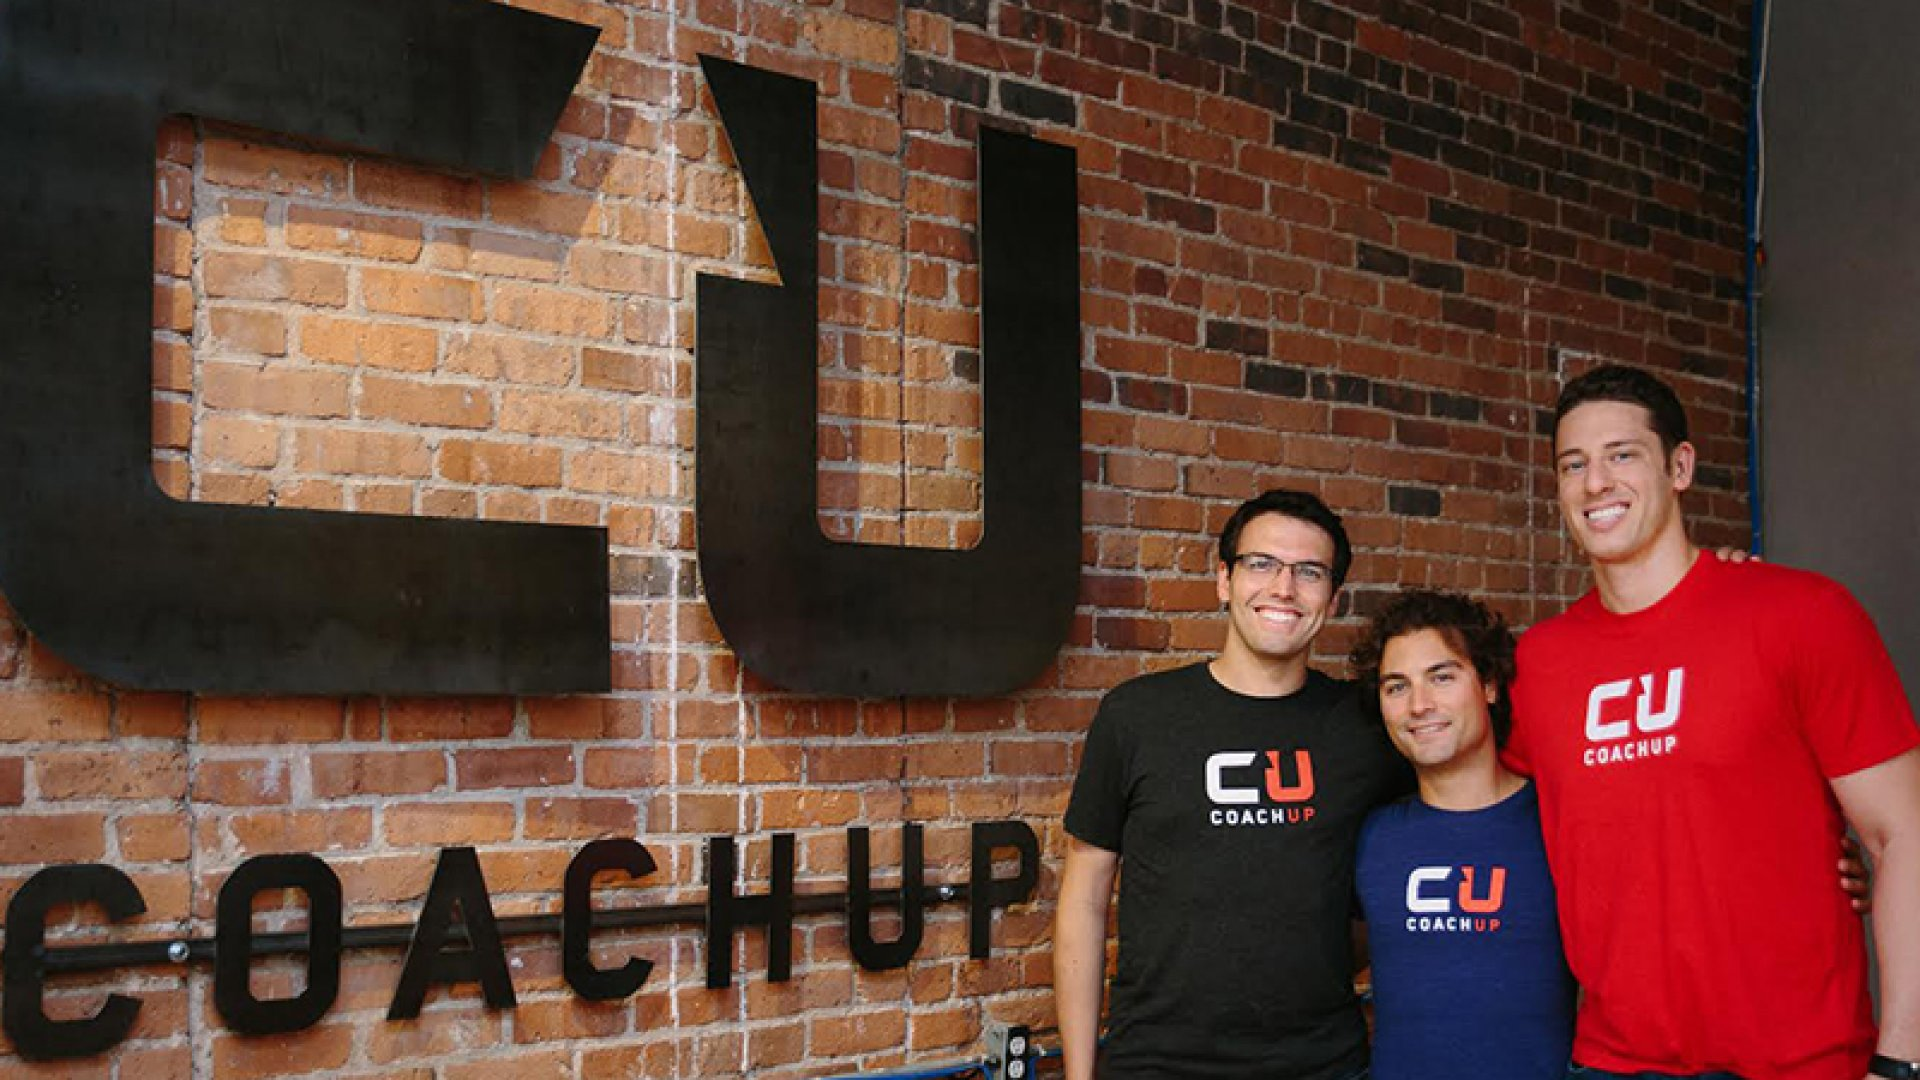 CoachUp founding team members Gabe Durazo and Arian Radmand with founder Jordan Fliegel.